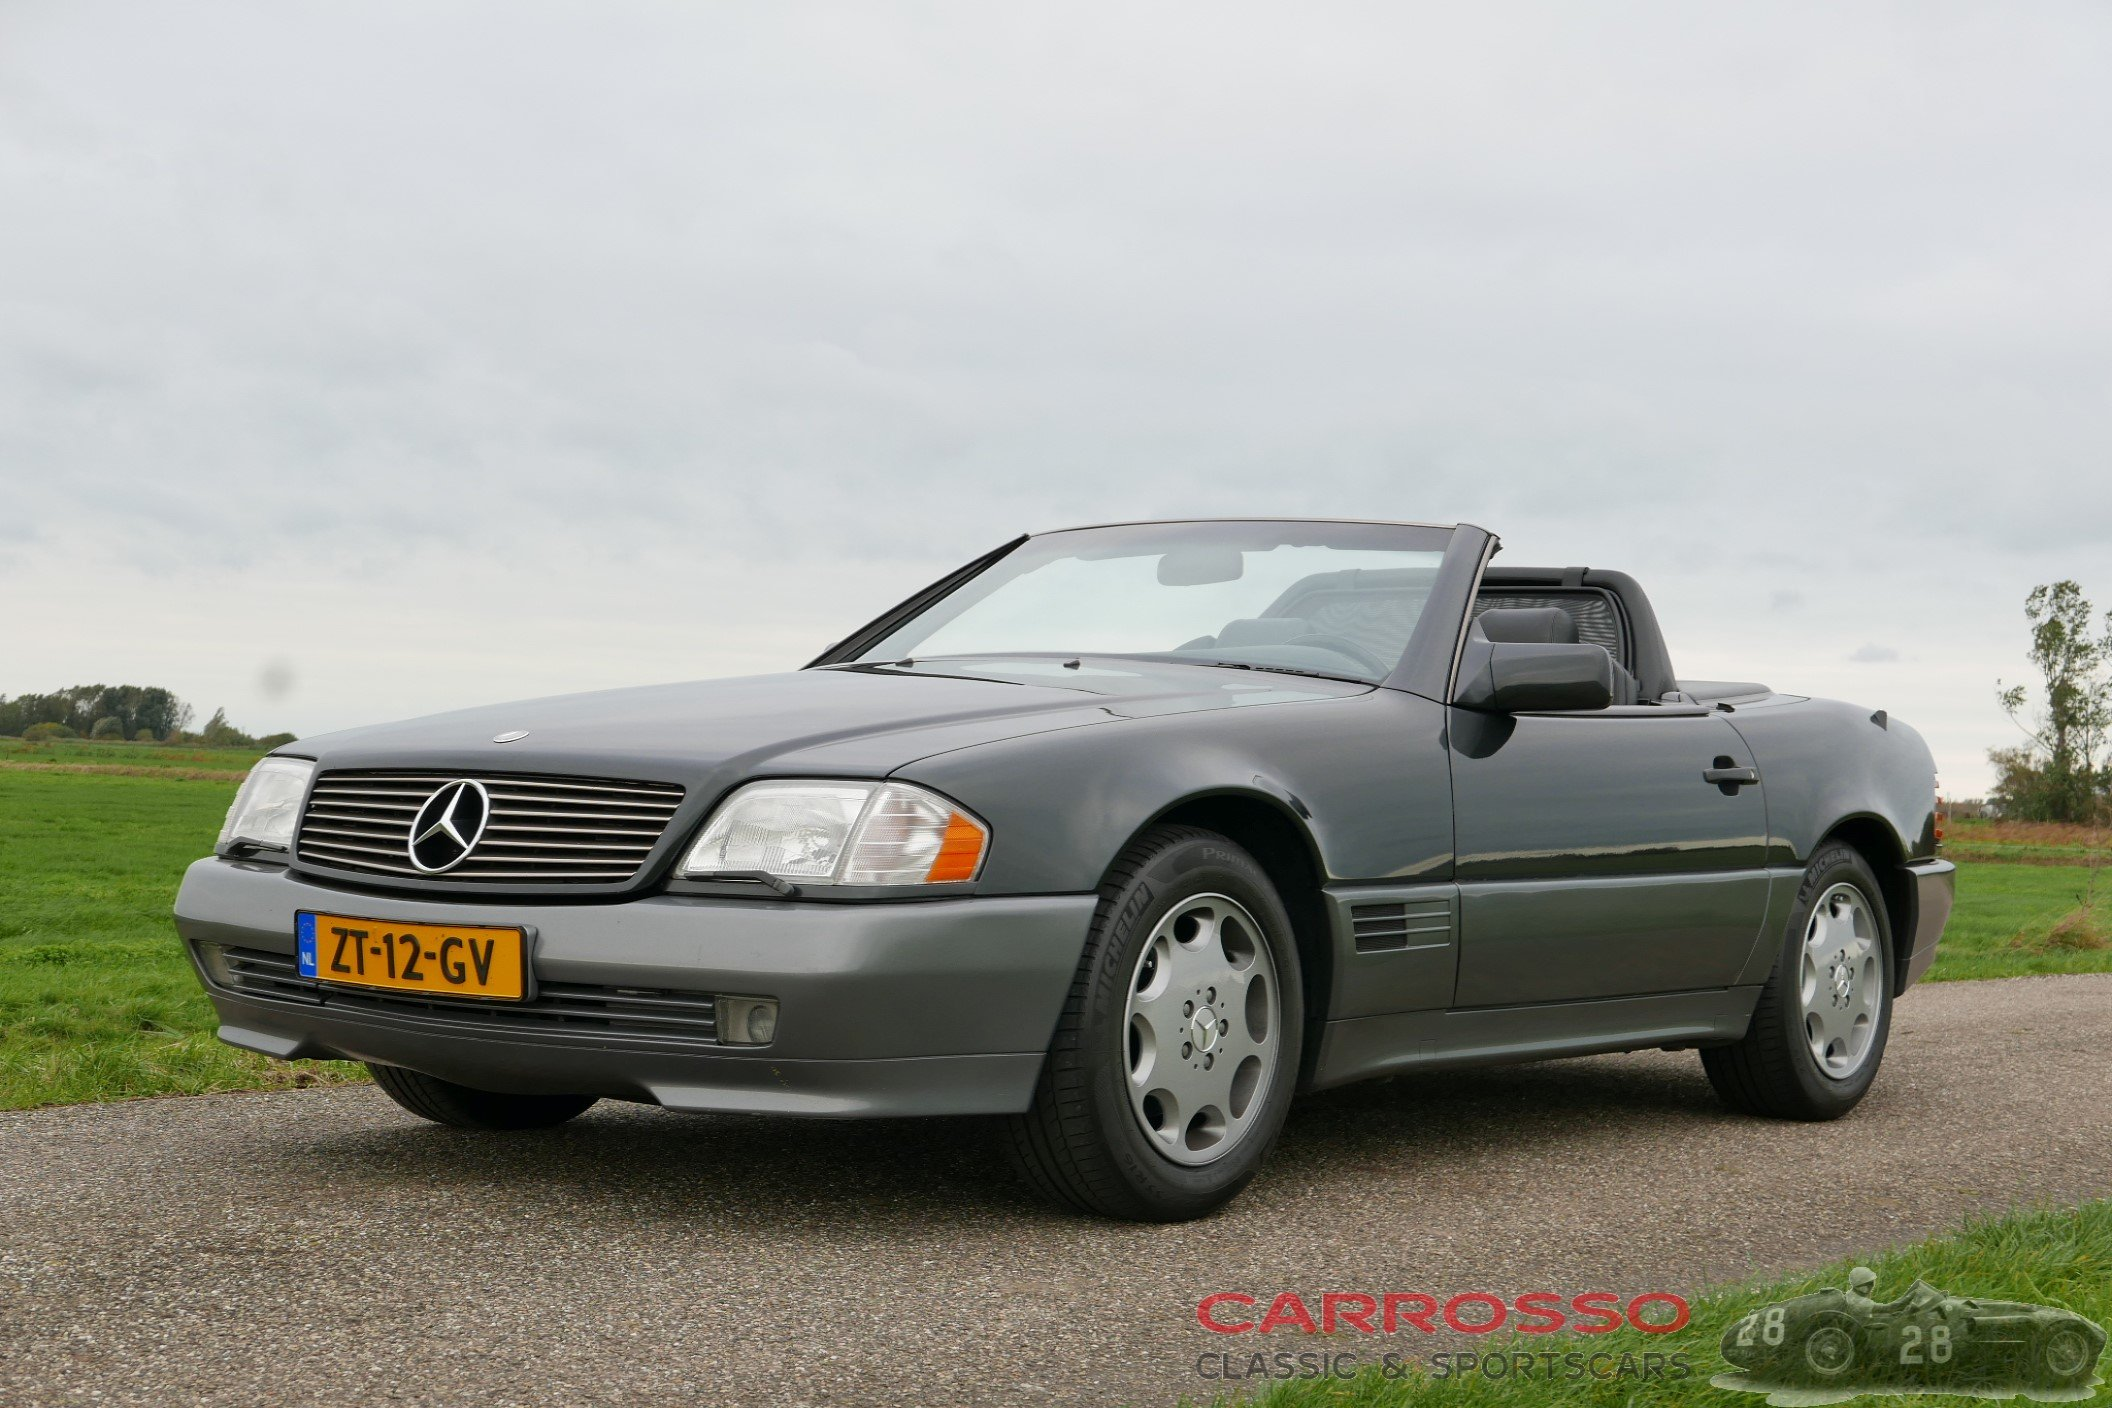 24Mercedes Benz SL 300 (73)